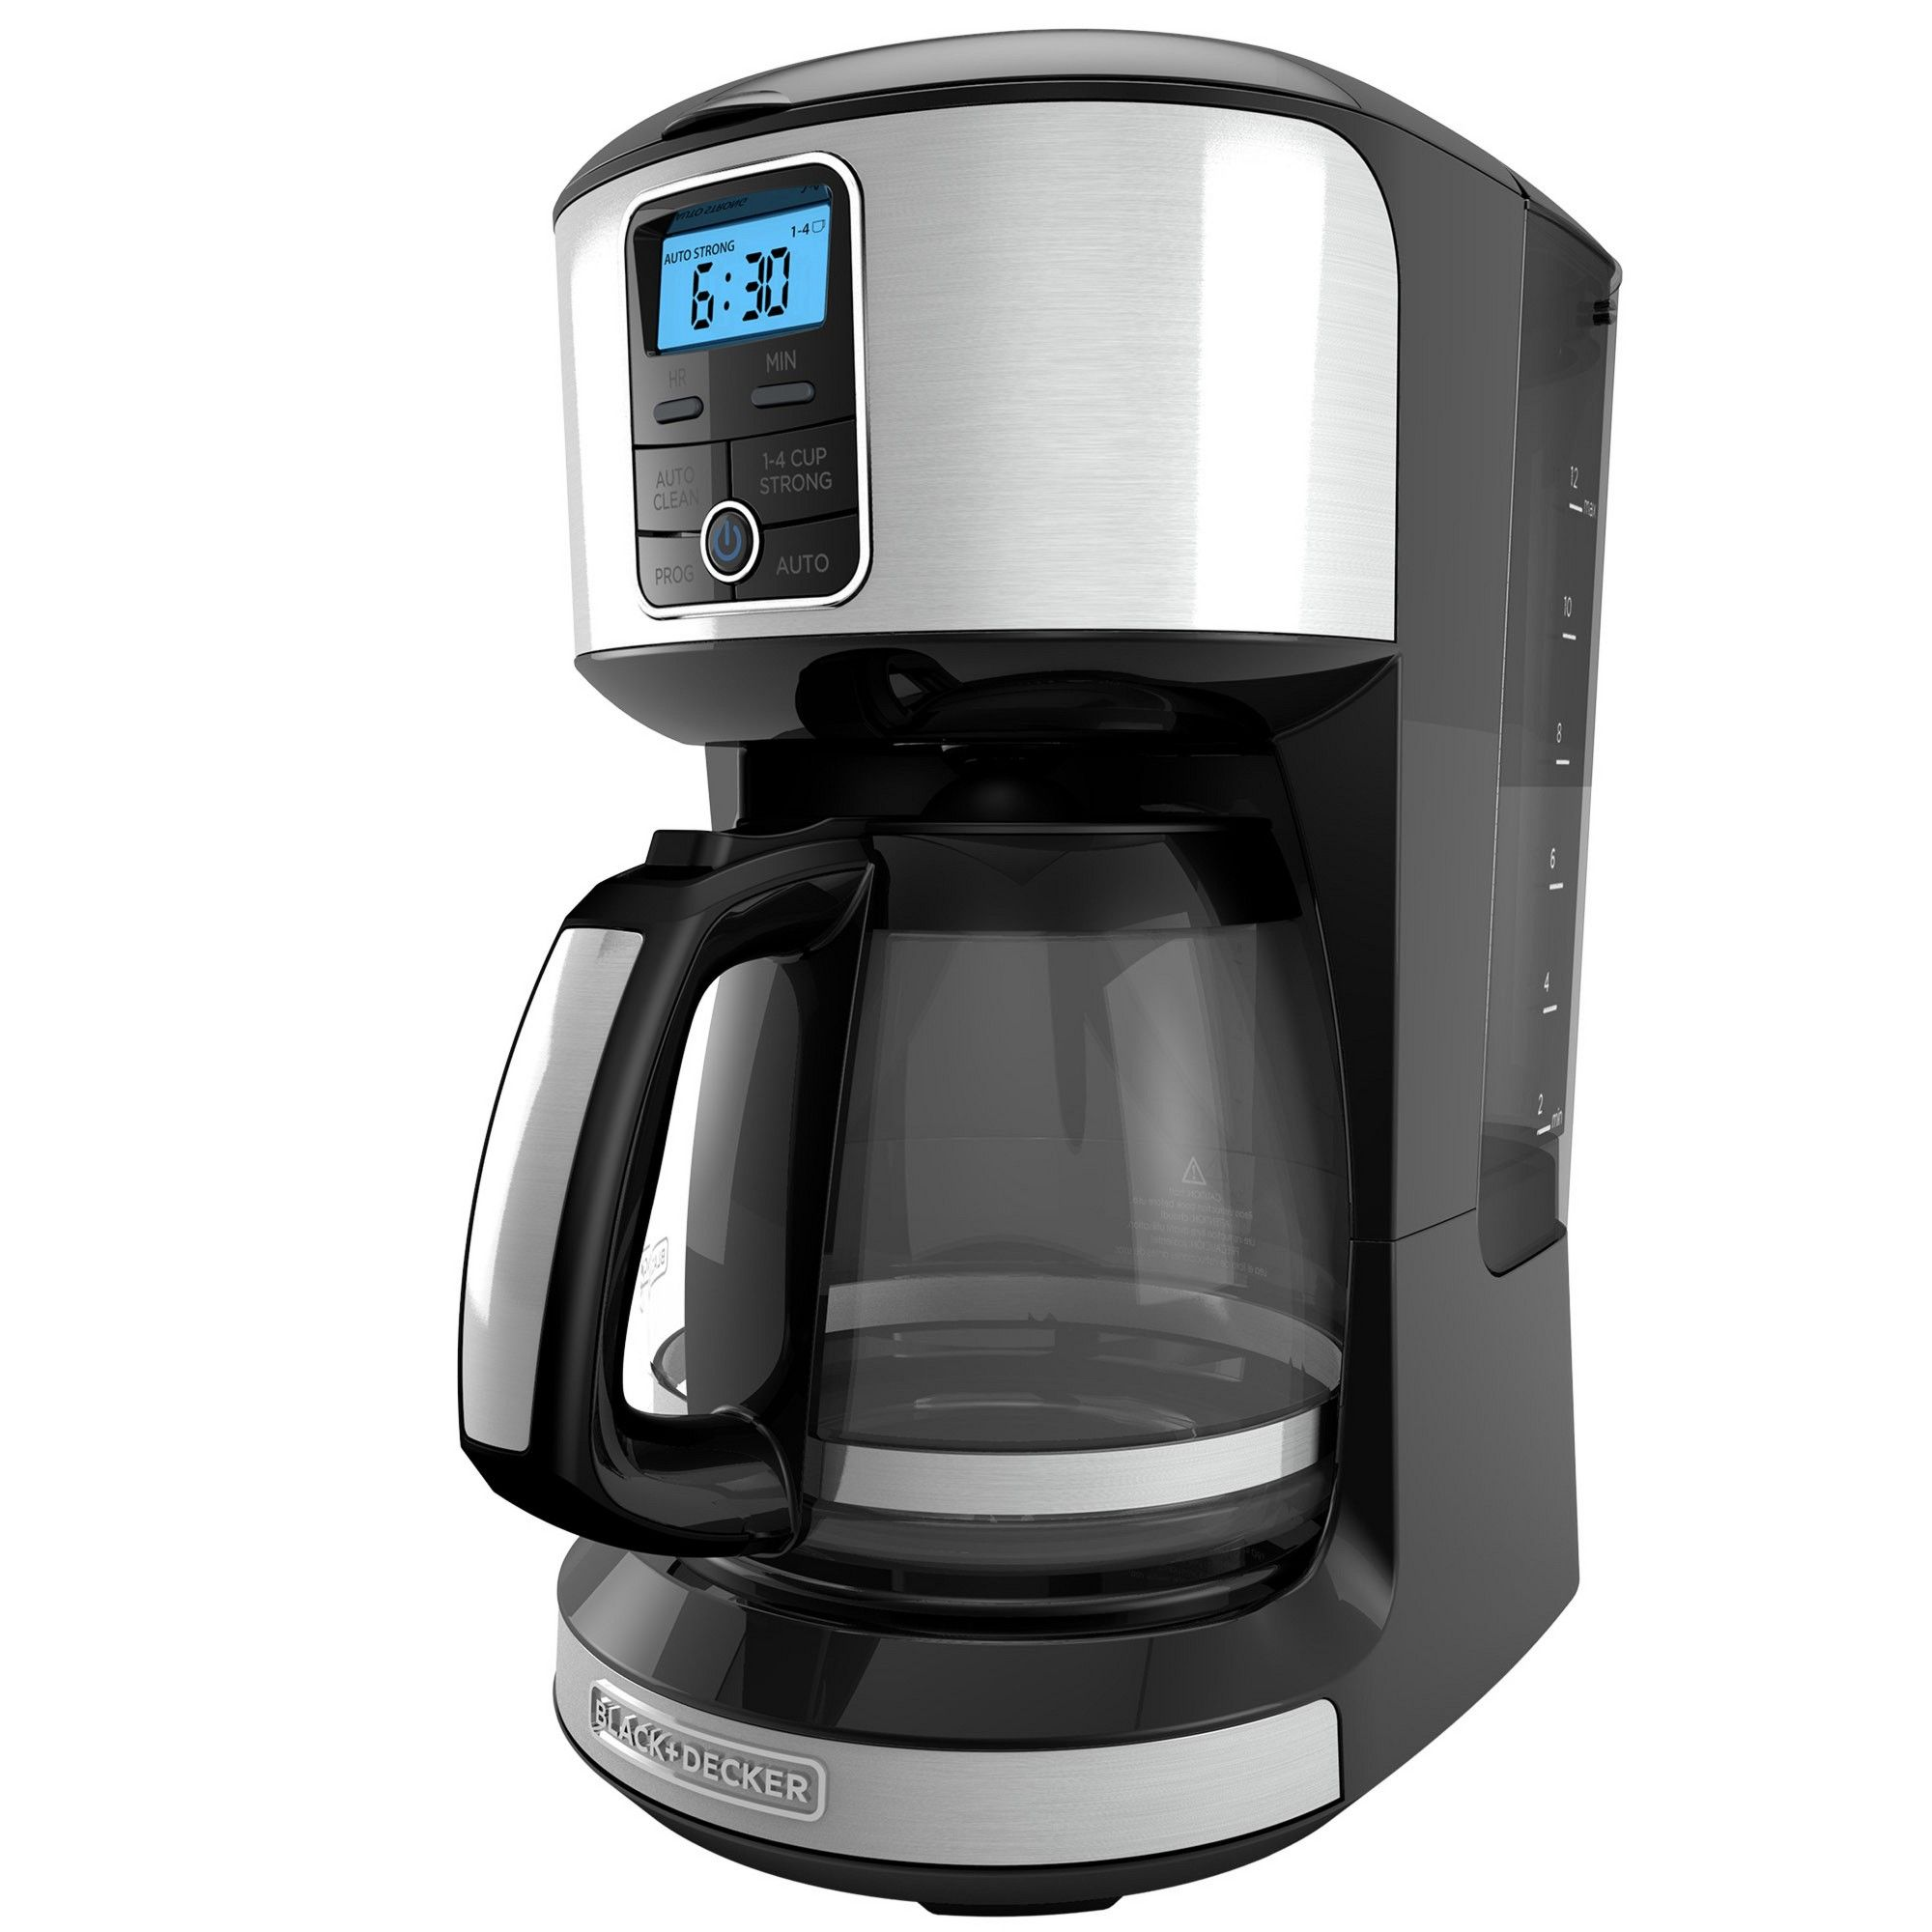 Blackdecker cup automatic programmable coffee maker black